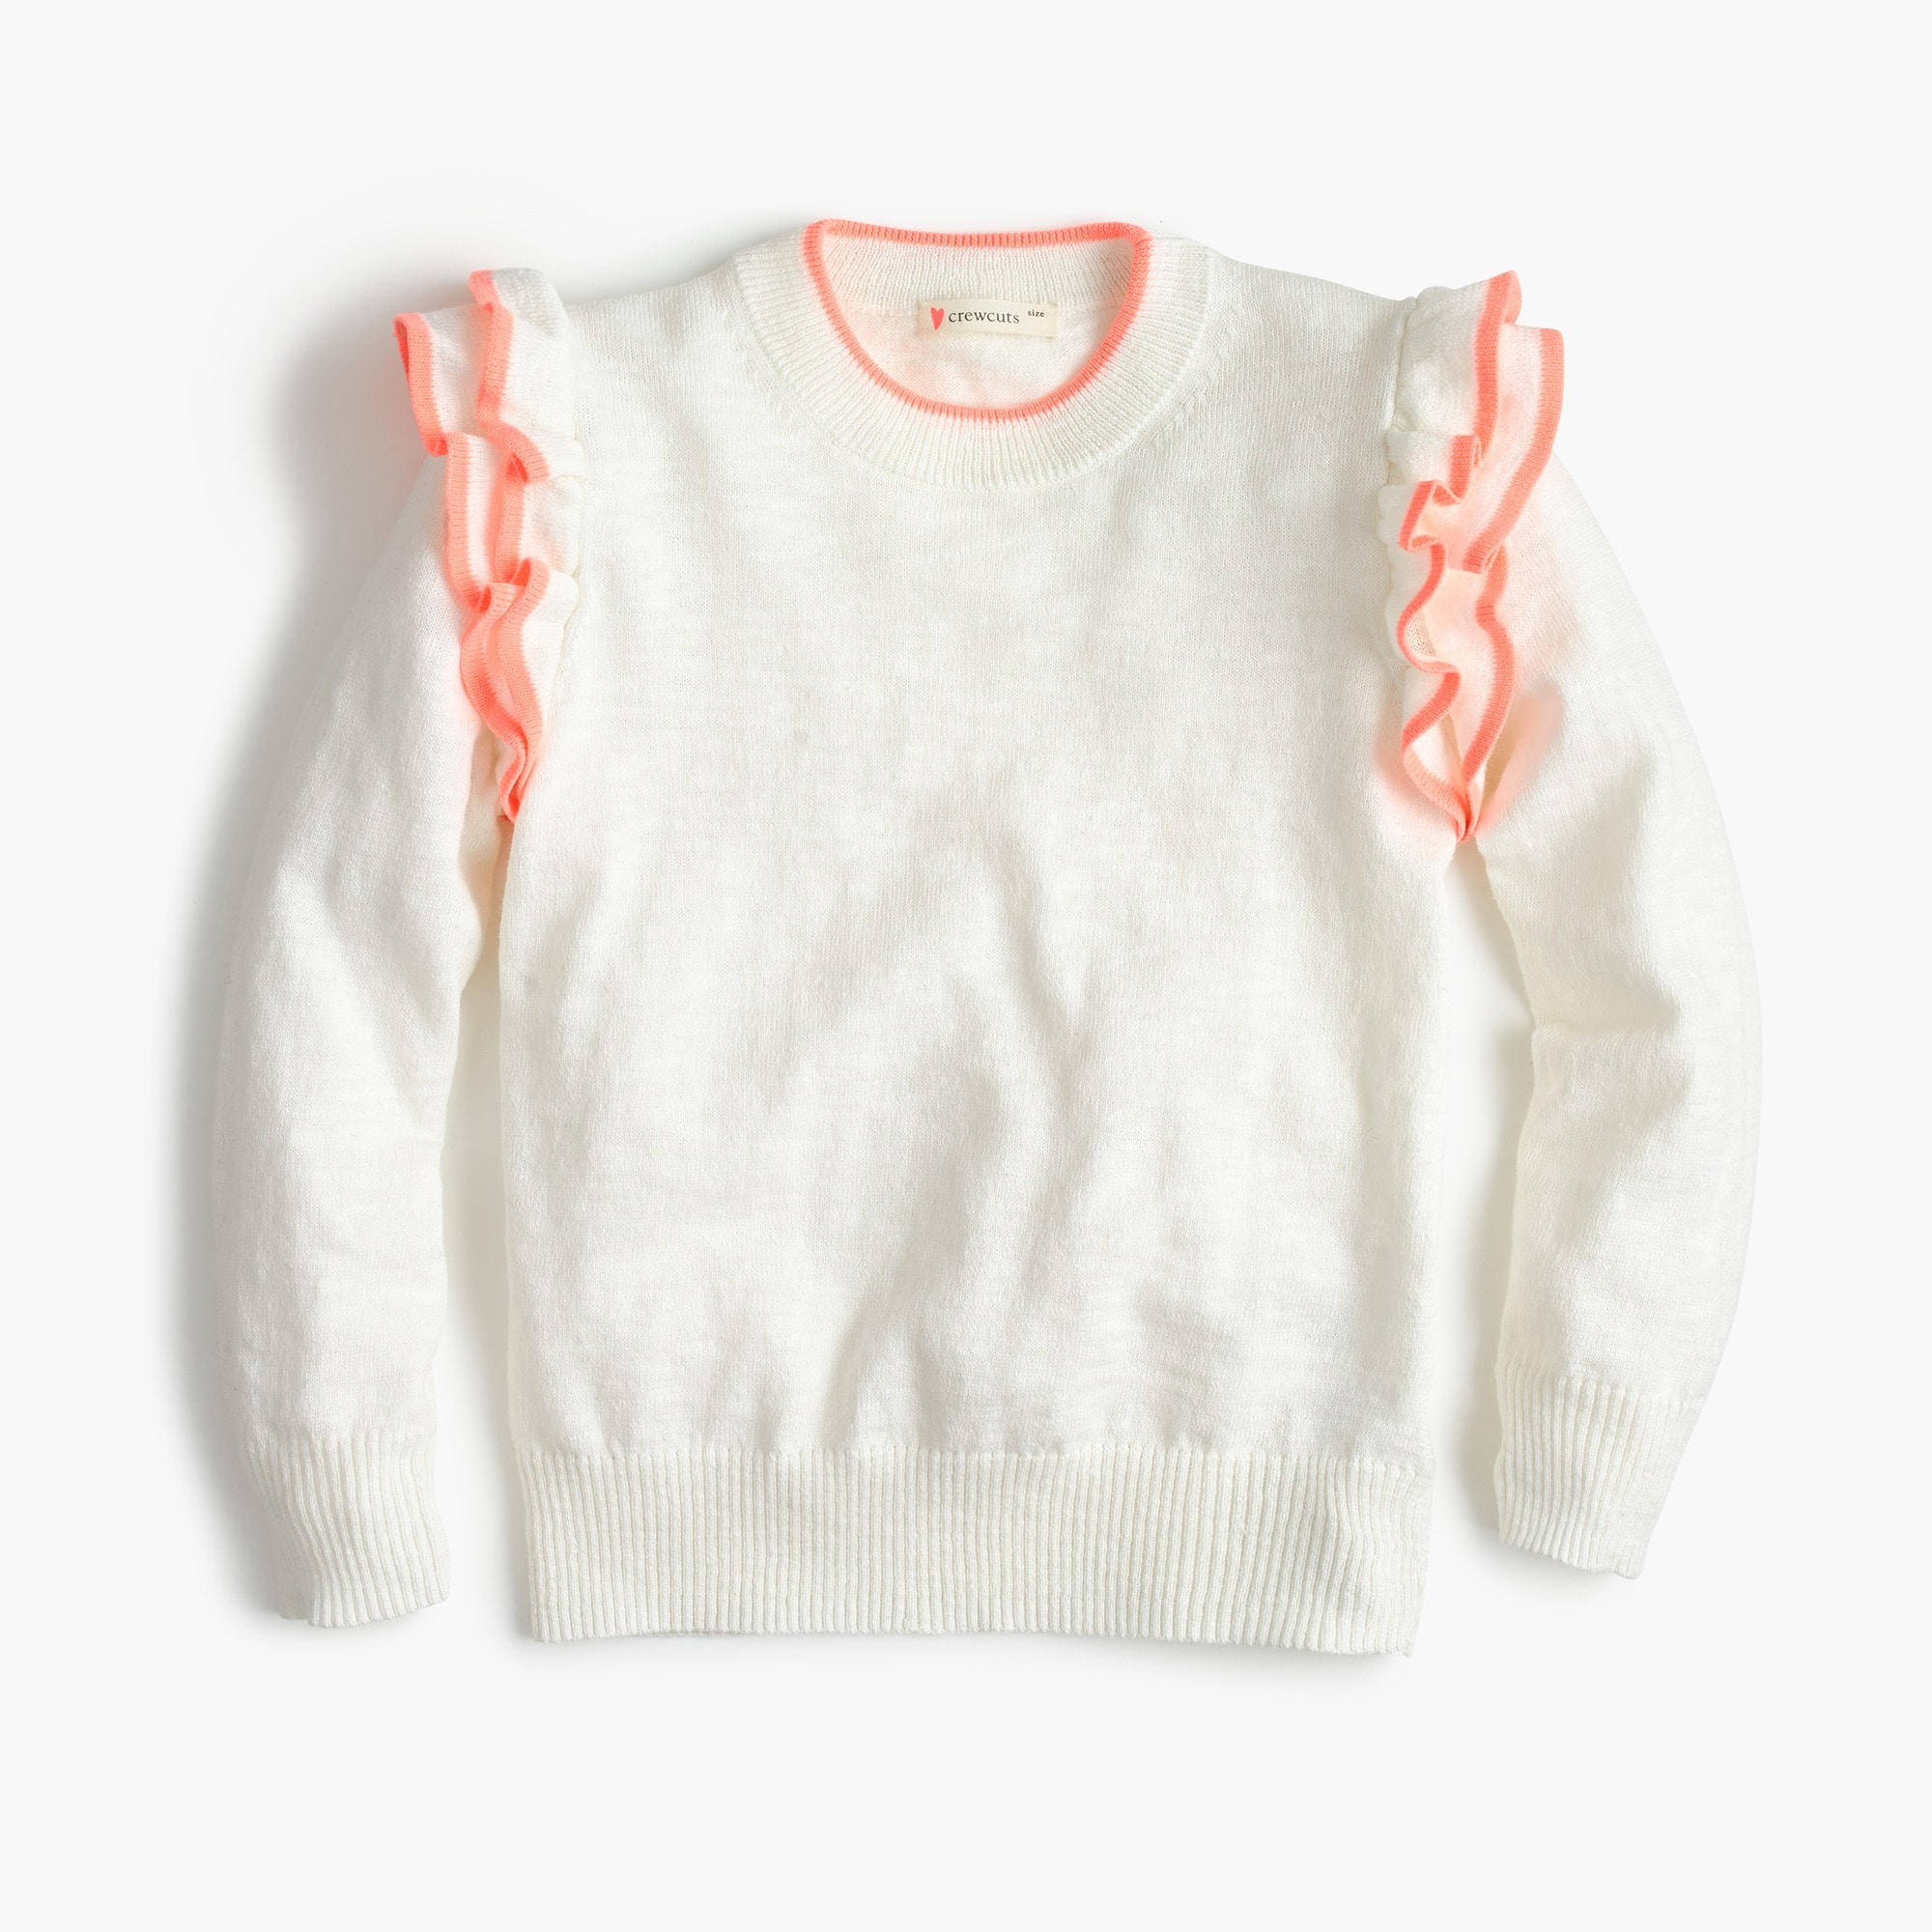 Girls' ruffle popover sweater girl new arrivals c